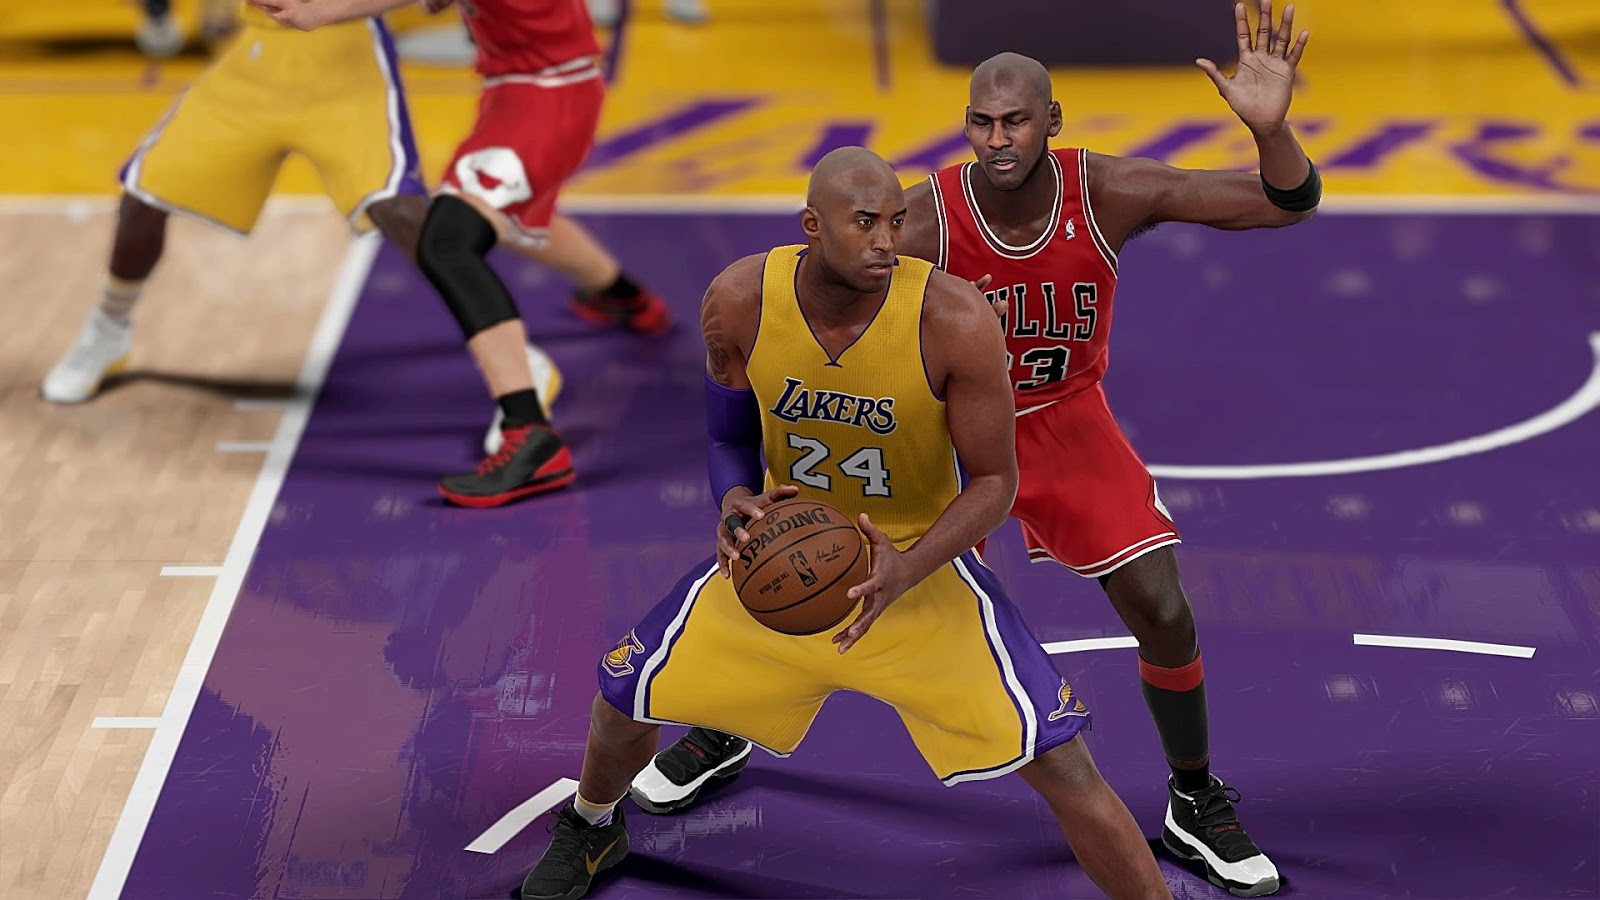 NBA 2K19 APK with Data+ OBB for Android Free Download - NBA 2K19 APK